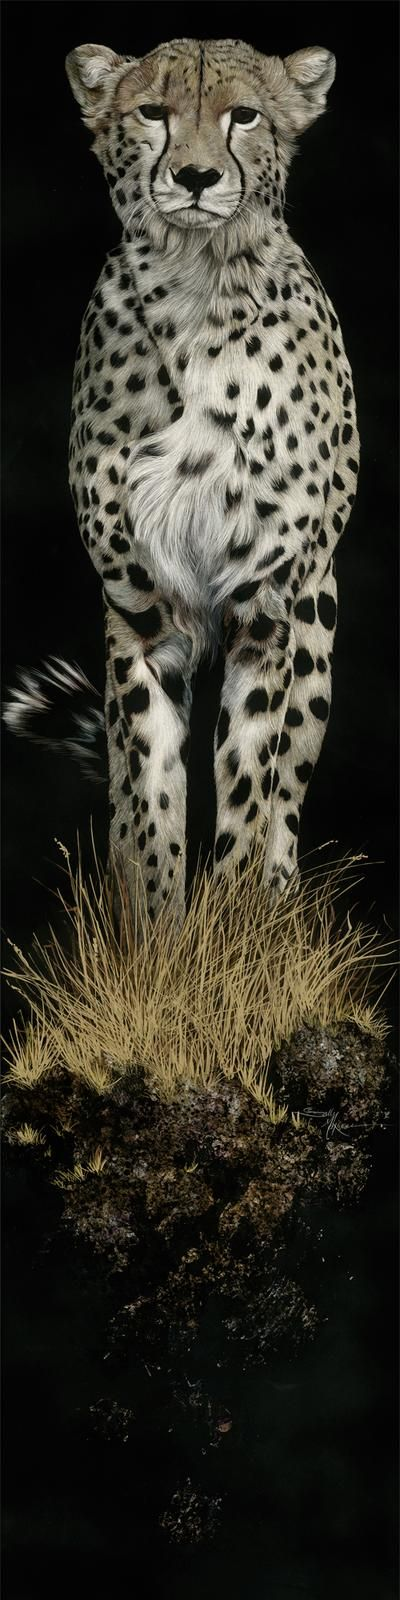 #Cheetah beauty Animal Photography African Wild Cat